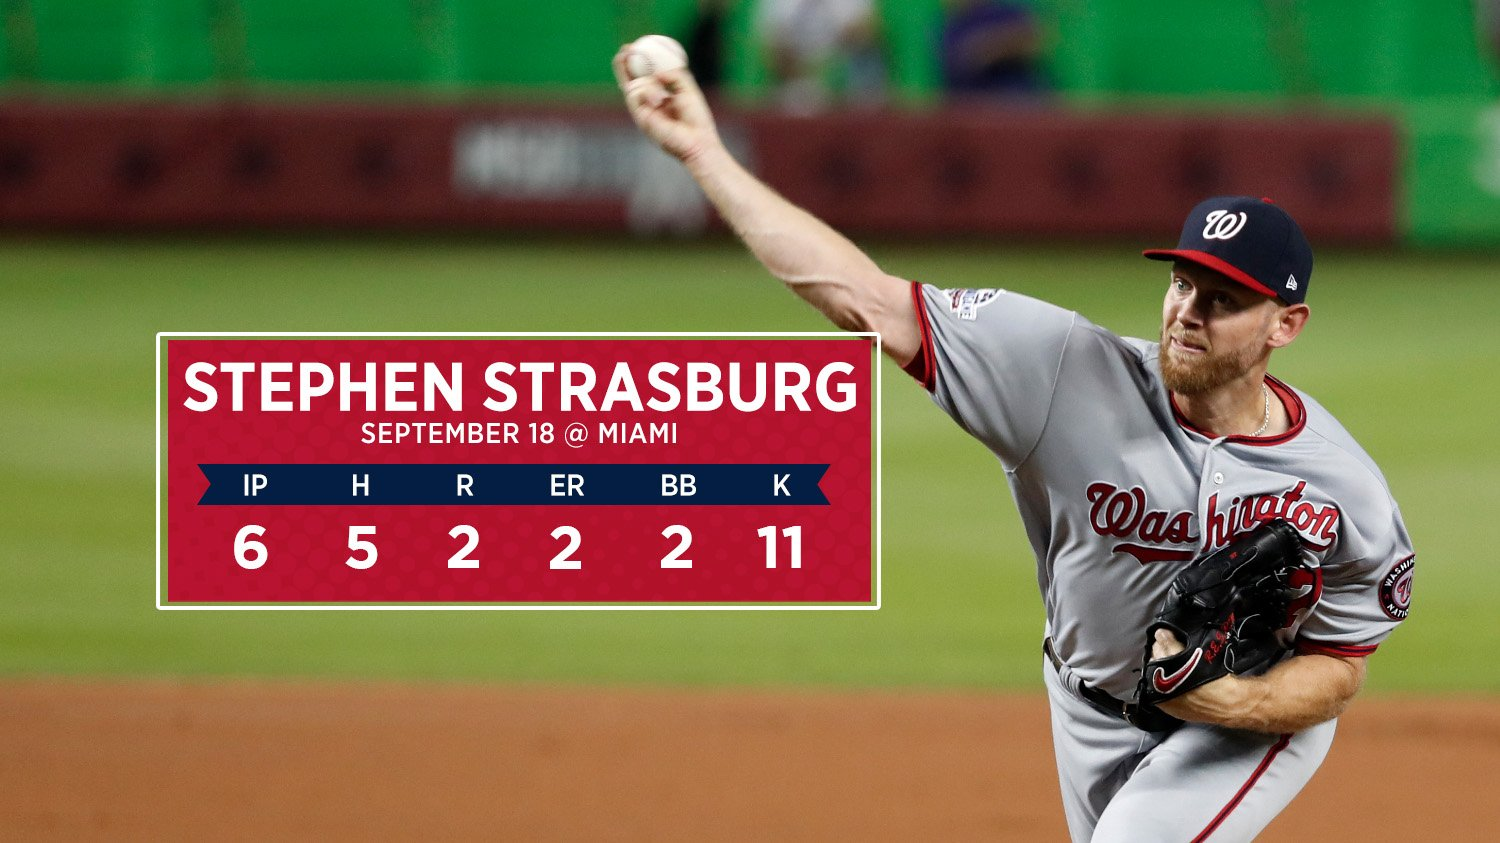 Stephen Strasburg matched a season-high with 11 Ks tonight.  ￰゚ヤᆬ￰゚ヤᆬ￰゚ヤᆬ￰゚ヤᆬ￰゚ヤᆬ￰゚ヤᆬ￰゚ヤᆬ￰゚ヤᆬ￰゚ヤᆬ￰゚ヤᆬ￰゚ヤᆬ https://t.co/OggChyc5go